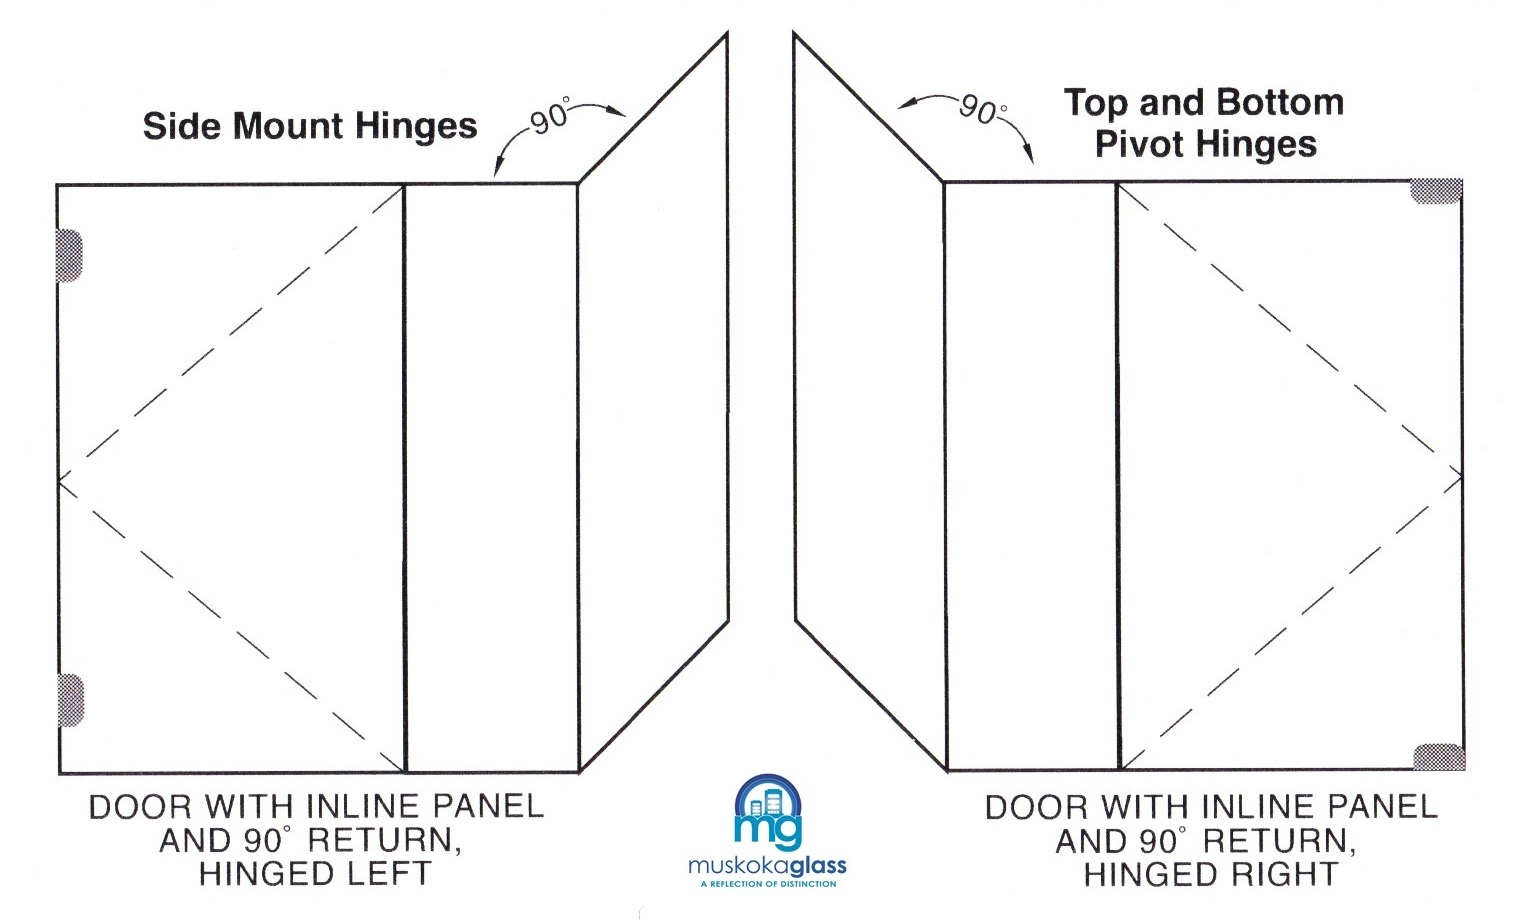 SINGLE DOOR WITH INLINE PANEL AND 90 DEGREE RETURN